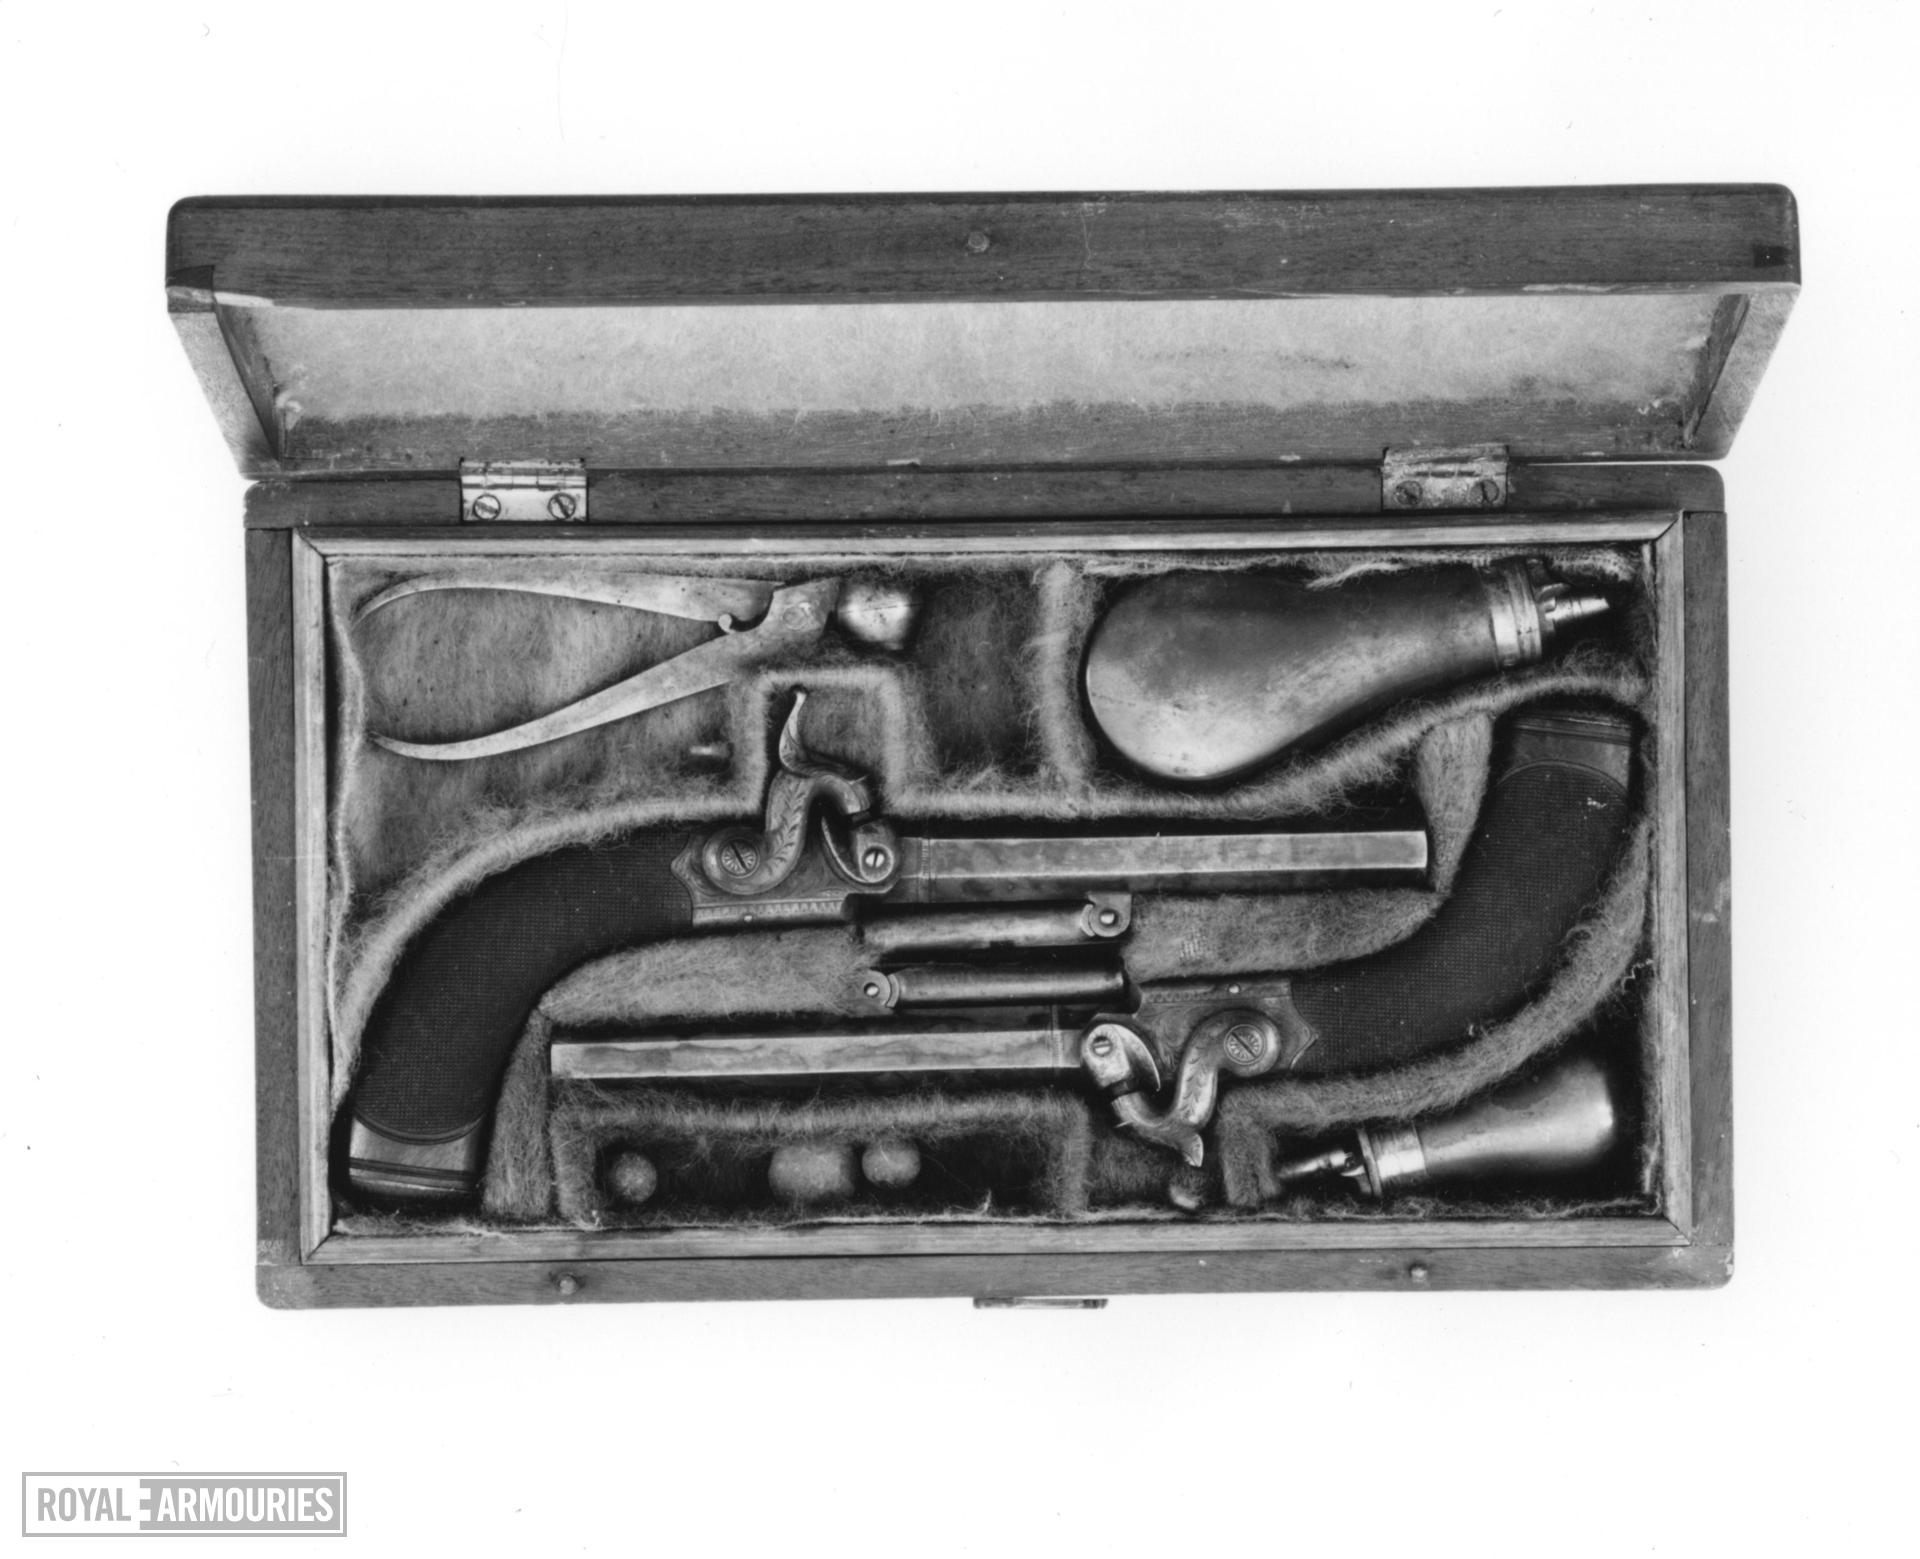 Percussion pocket pistol By Blanch Cased; one of a pair; see XII.1463 A